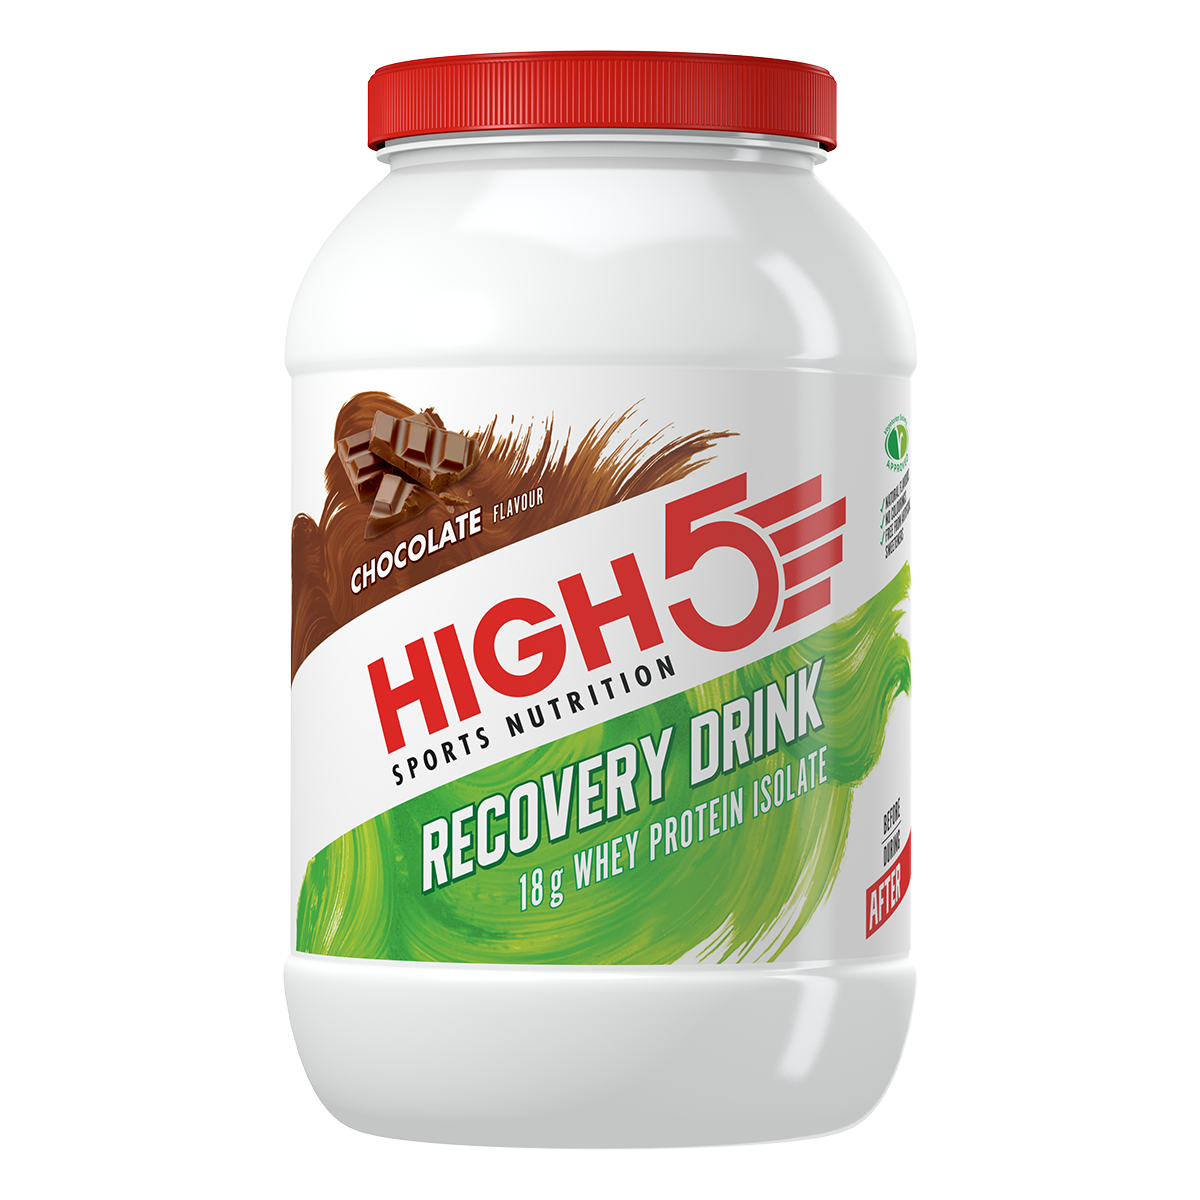 Recovery-Drink_Chocolate_1600g_Front_RGB_1200x1200